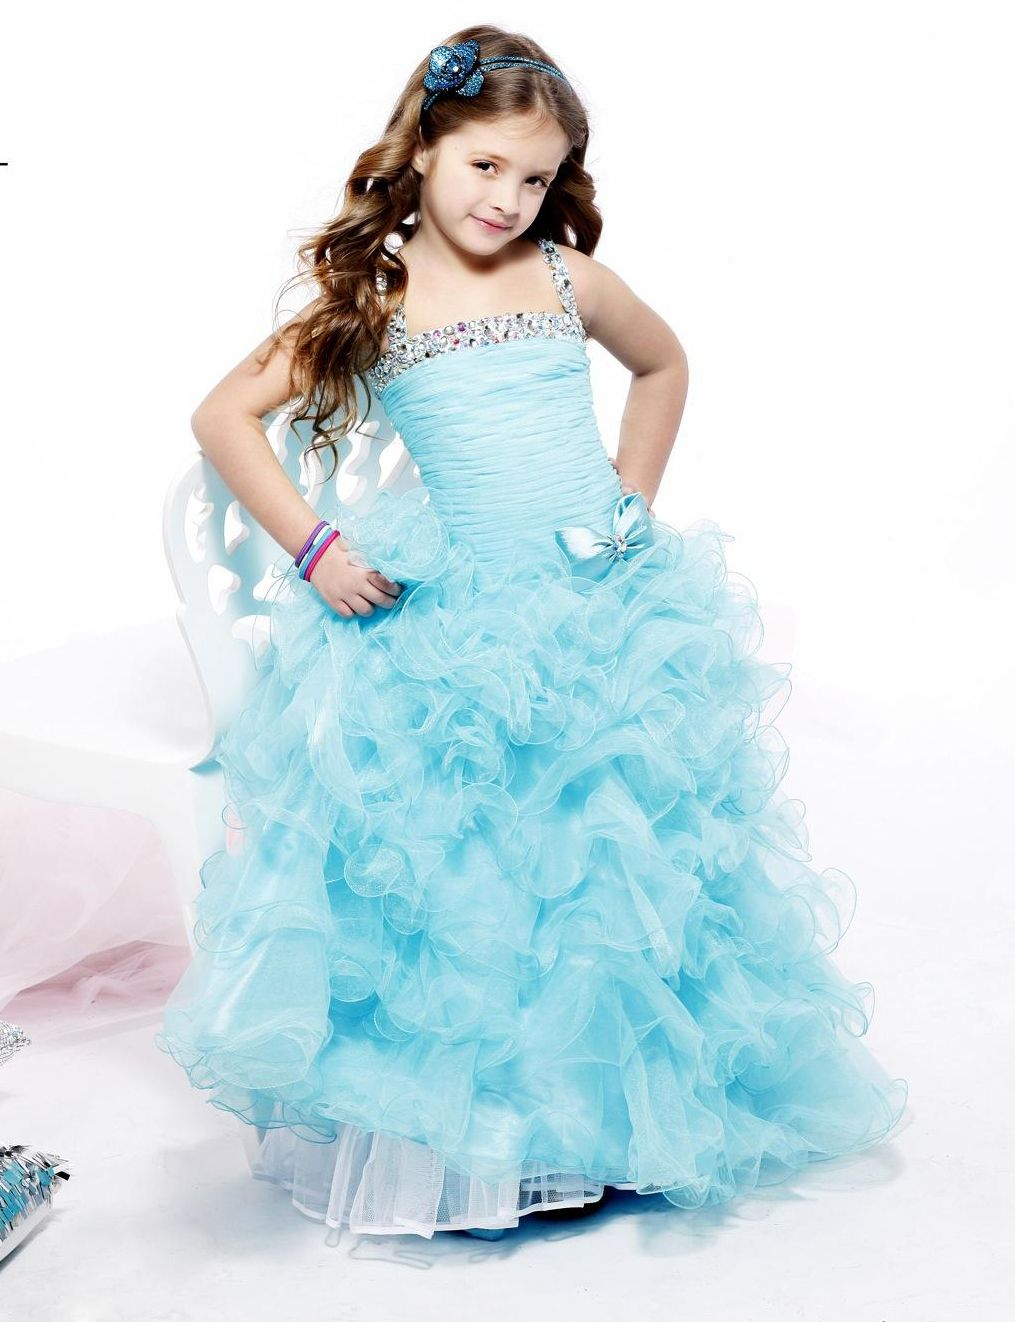 pagent beach dresses for kids | Children's Dresses – Sherri Hill ...